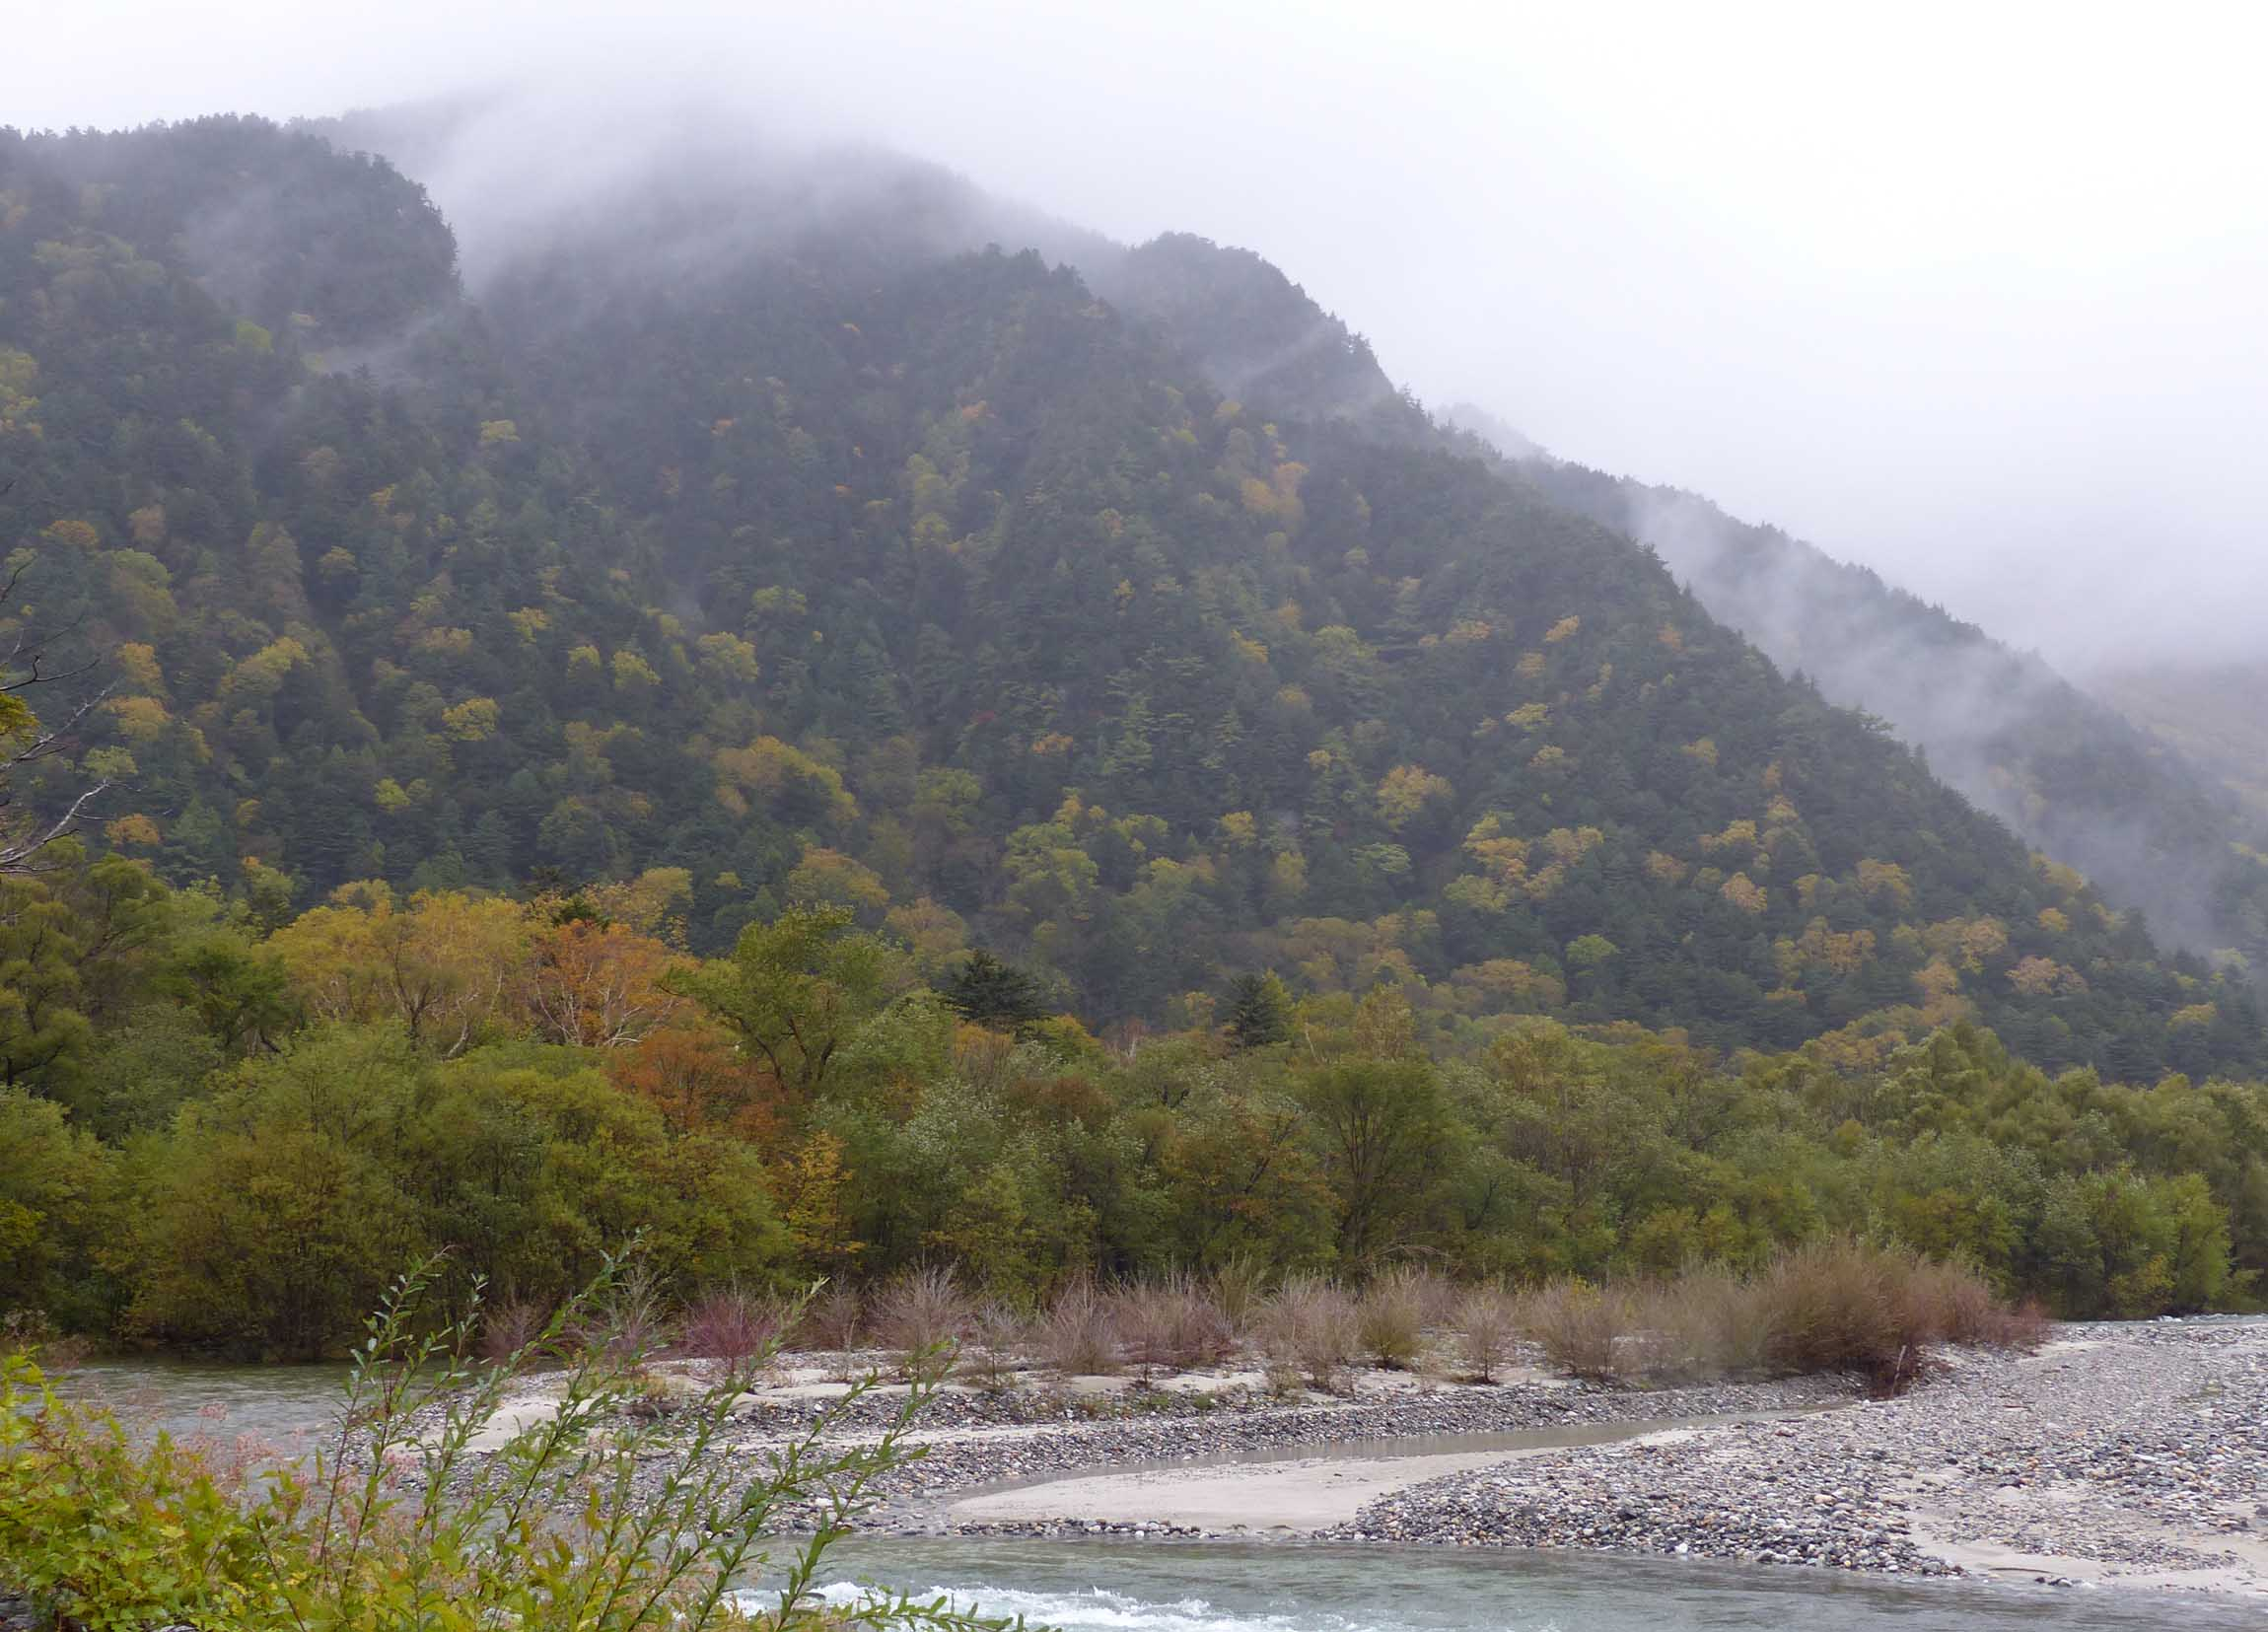 River surrounded by wooded hillsides